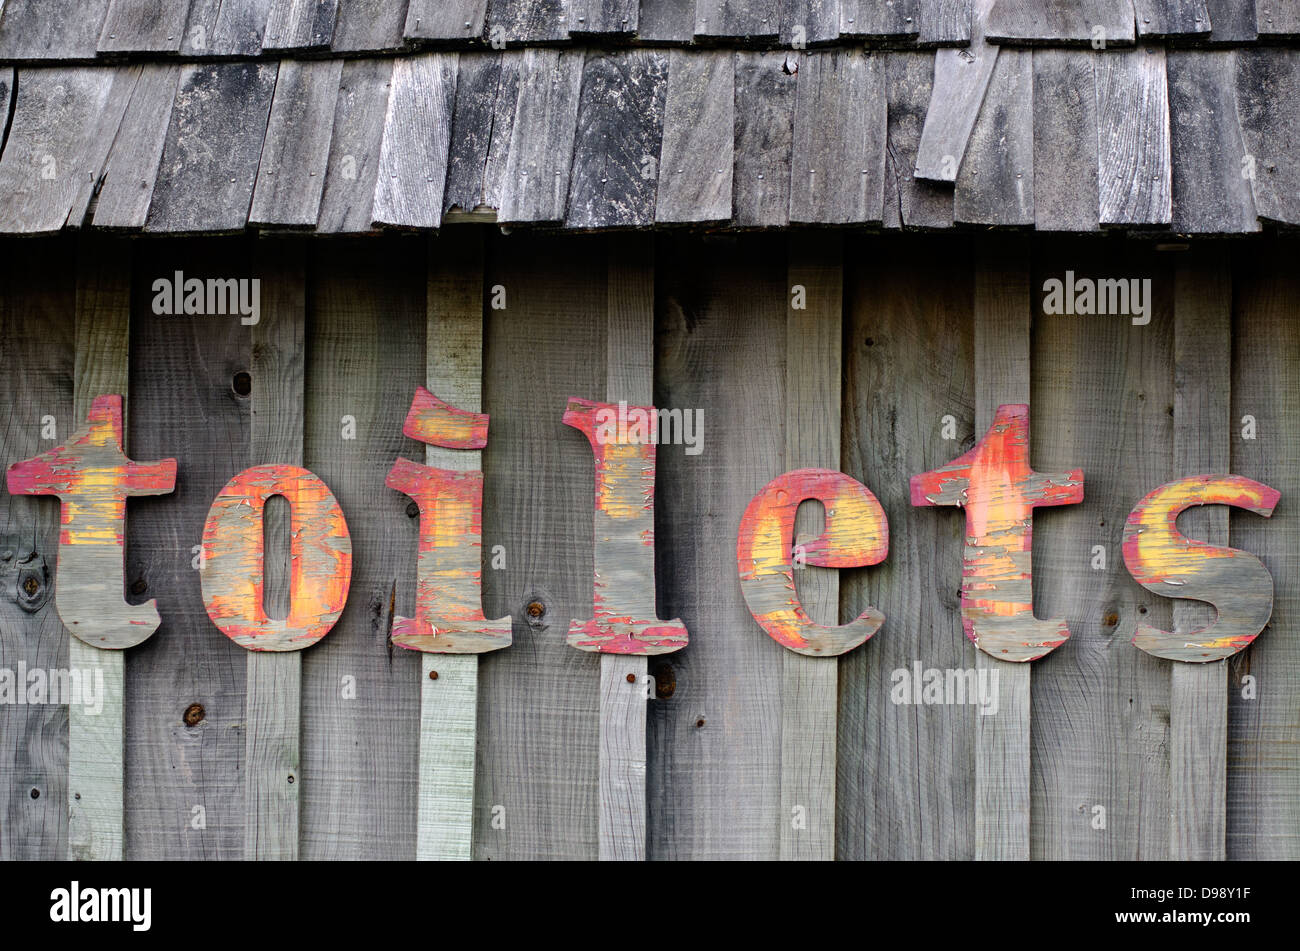 The wording of Toilets on a wooden wall. - Stock Image